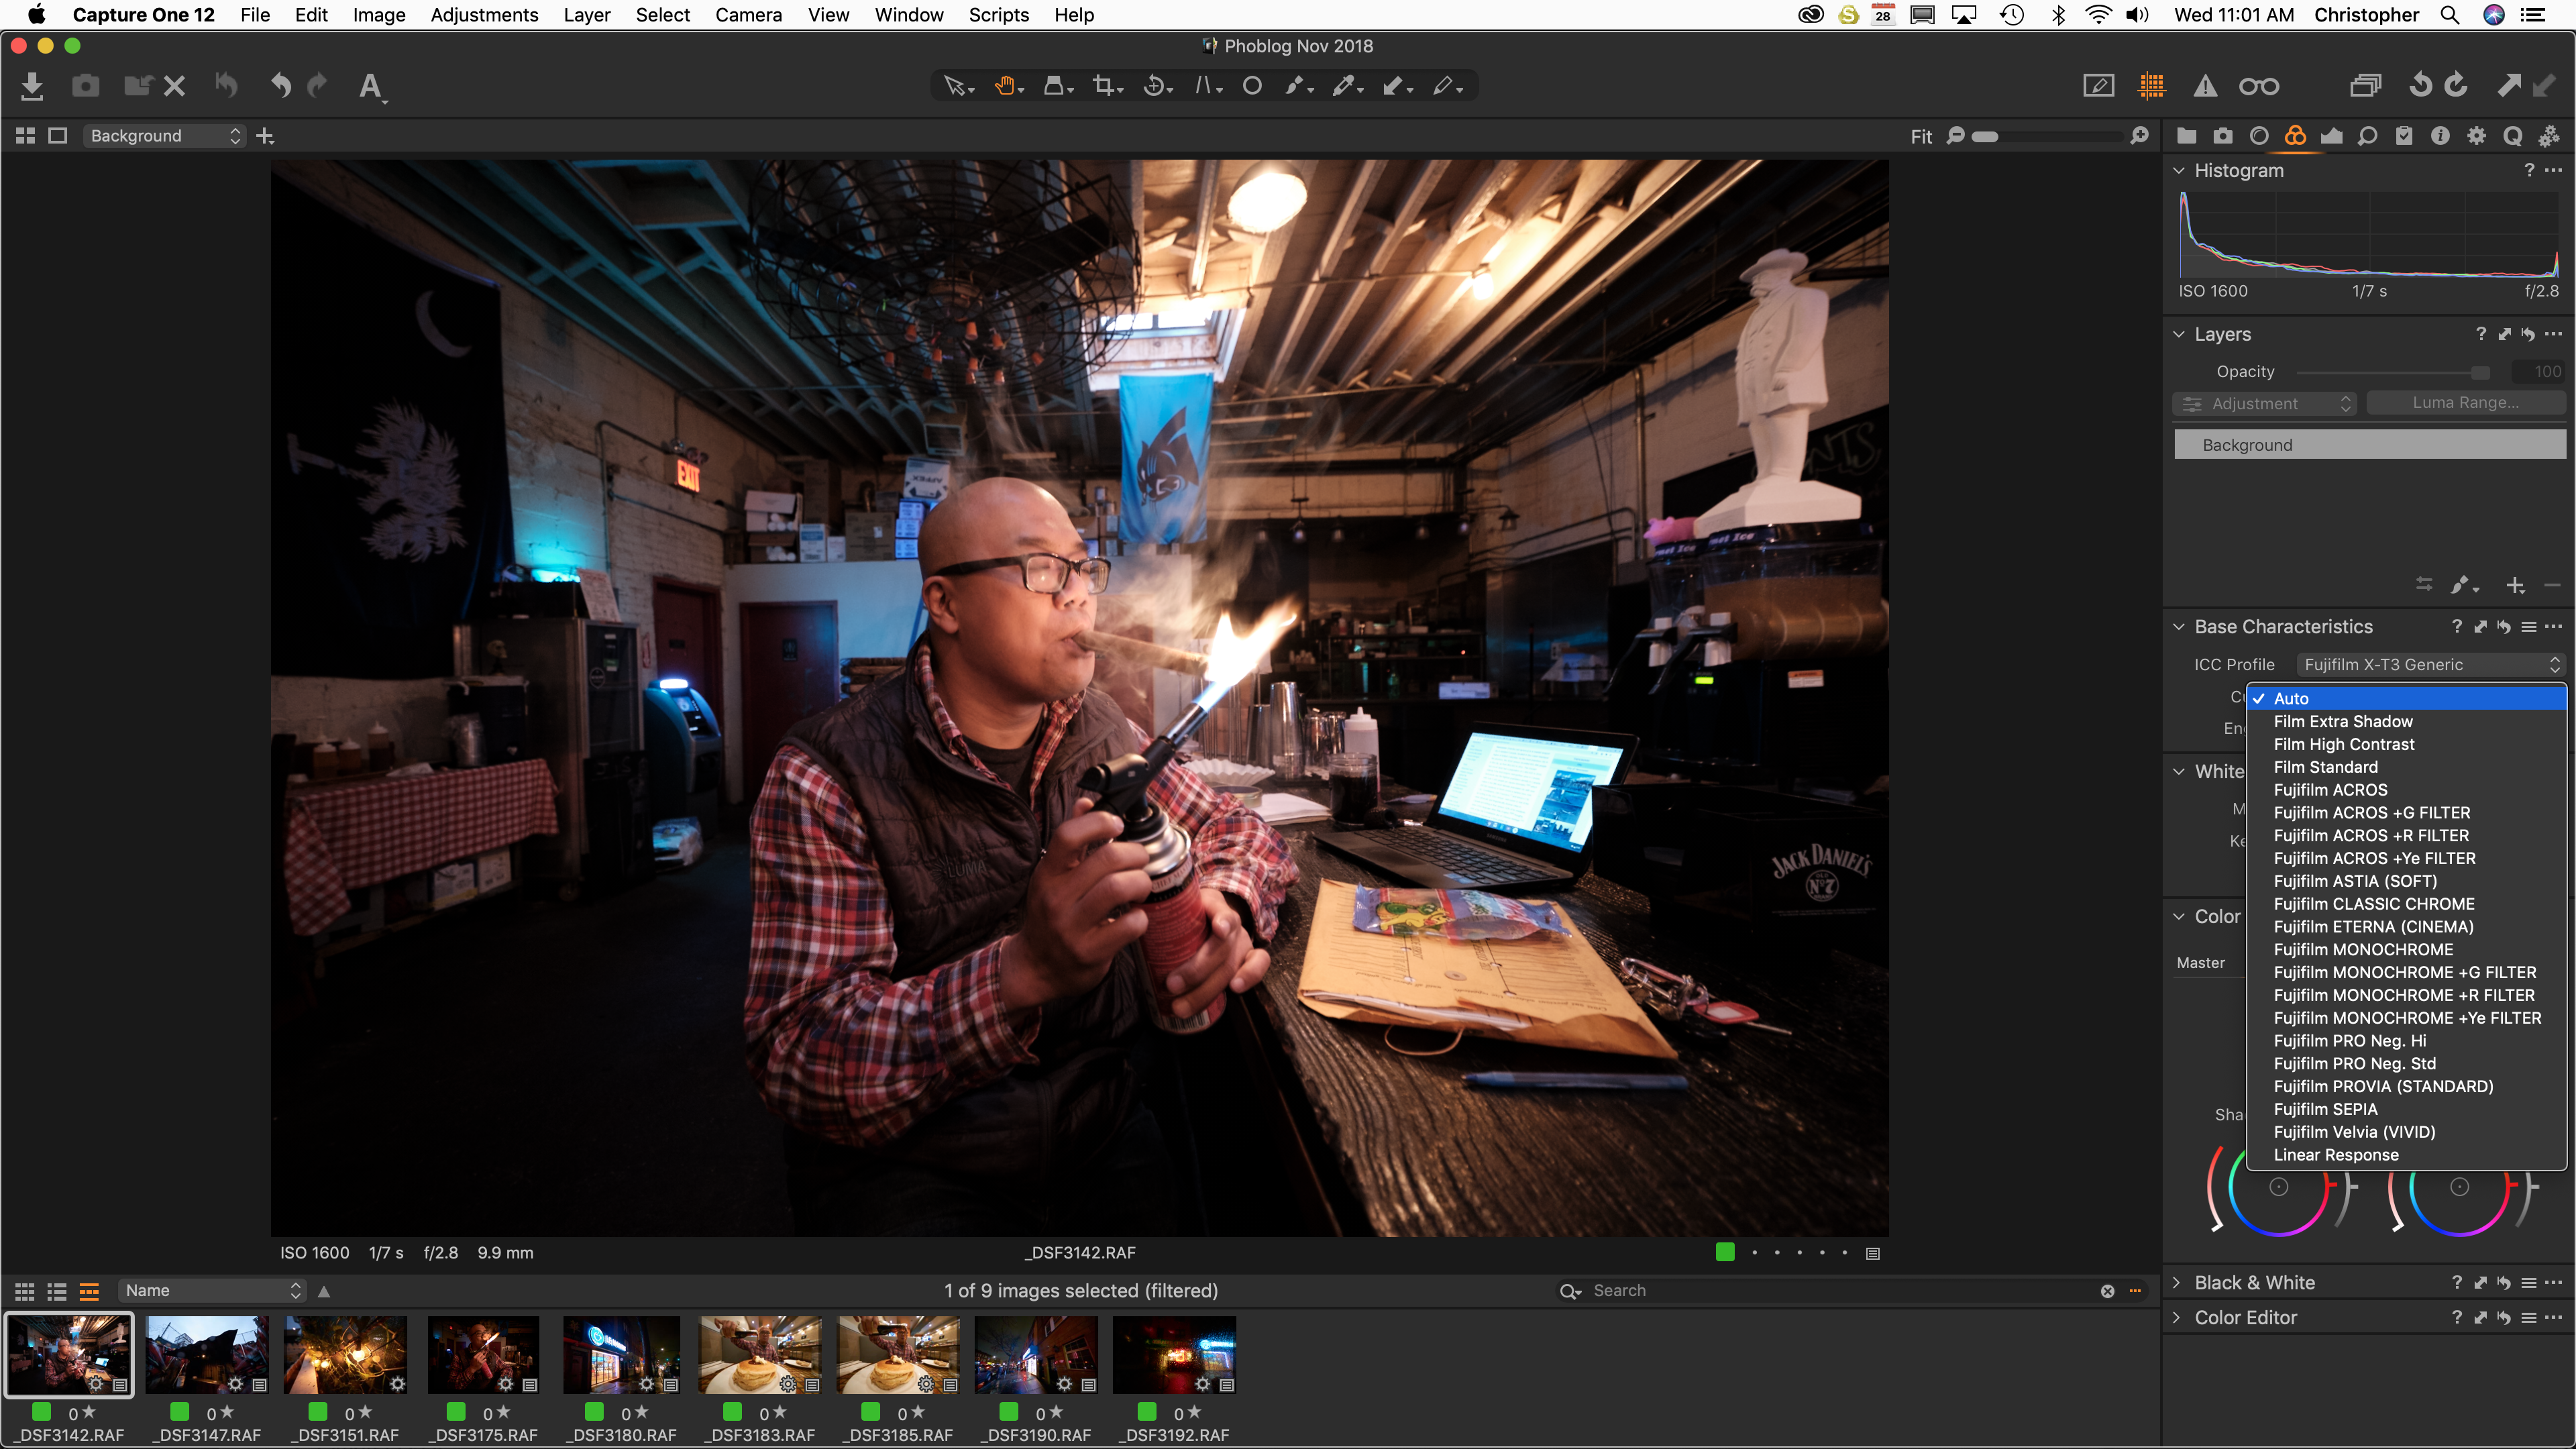 Review: Capture One 12 (Most of the Enhancements We Really Needed and Wanted)